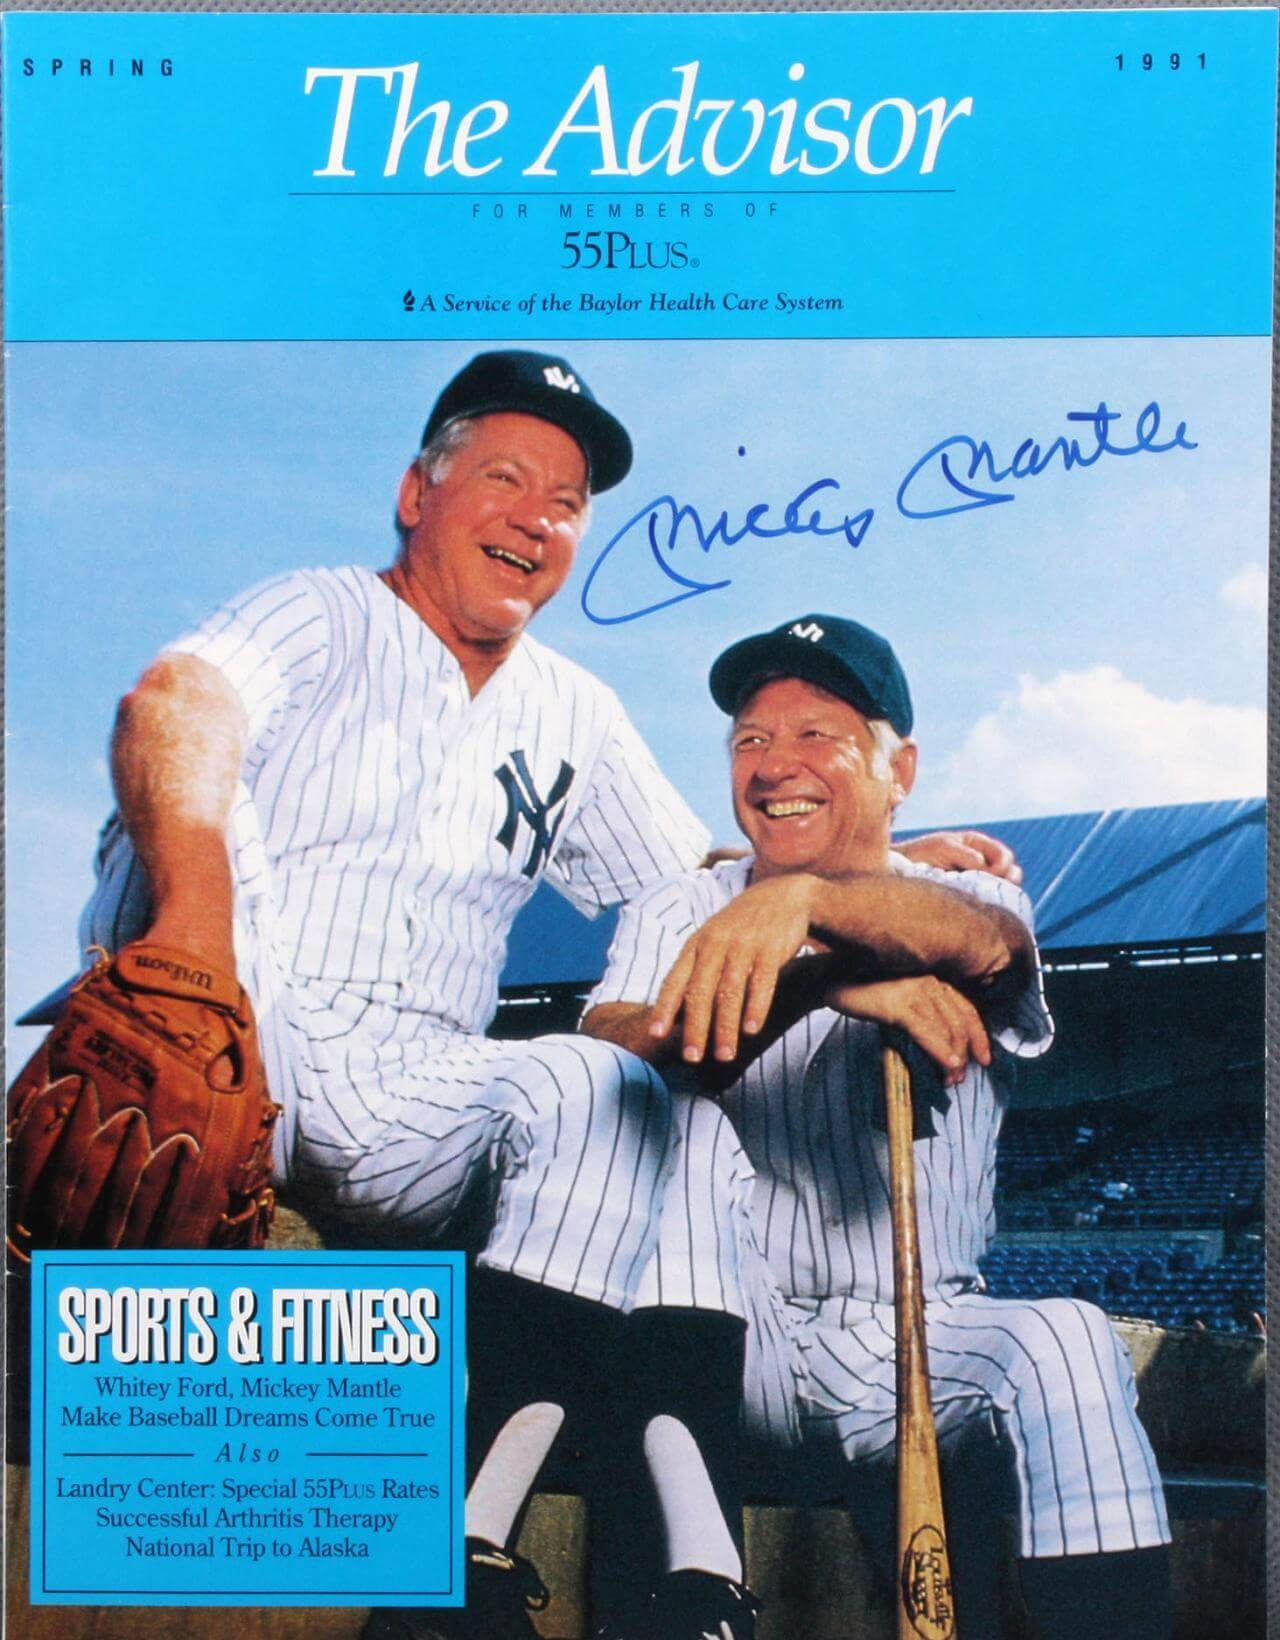 Yankees Mickey Mantle The Advisor Signed Health Care Catalog69813_01_lg